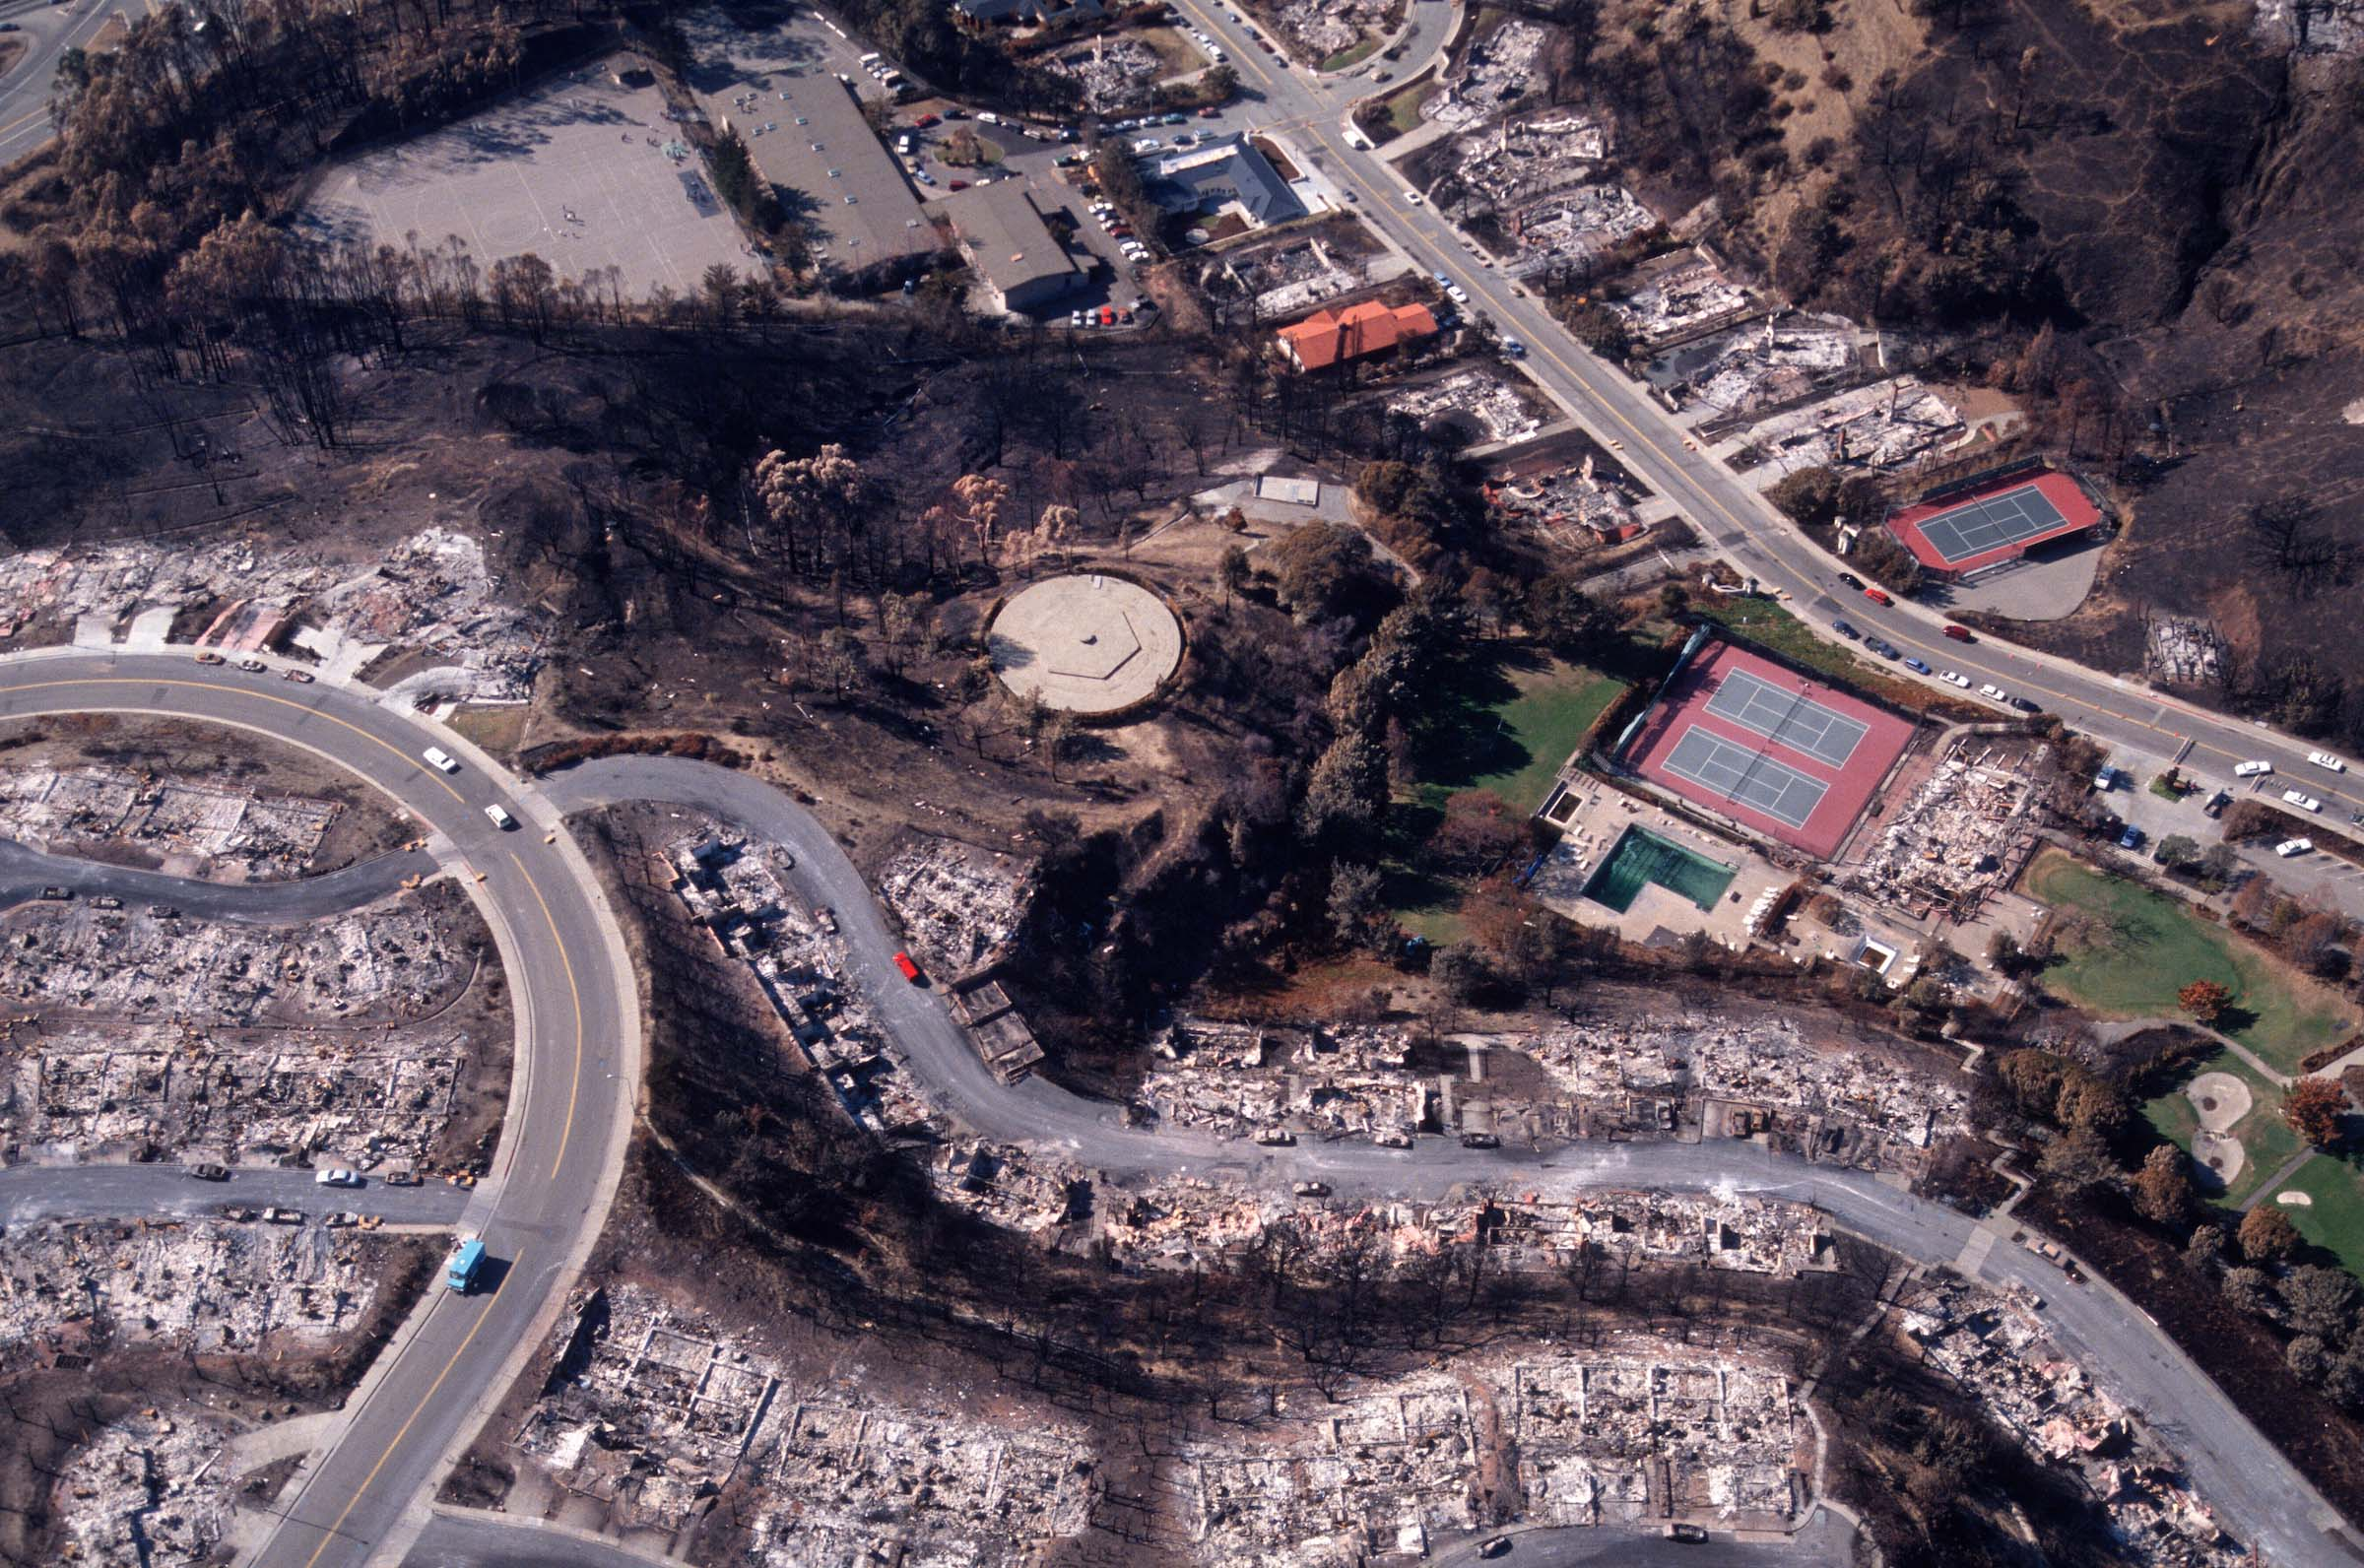 This aerial view looks onto the heavily populated Hiller Highlands neighborhood and the Highland Country Club in Oakland in the aftermath of the deadly 1991 Oakland Hills fire.